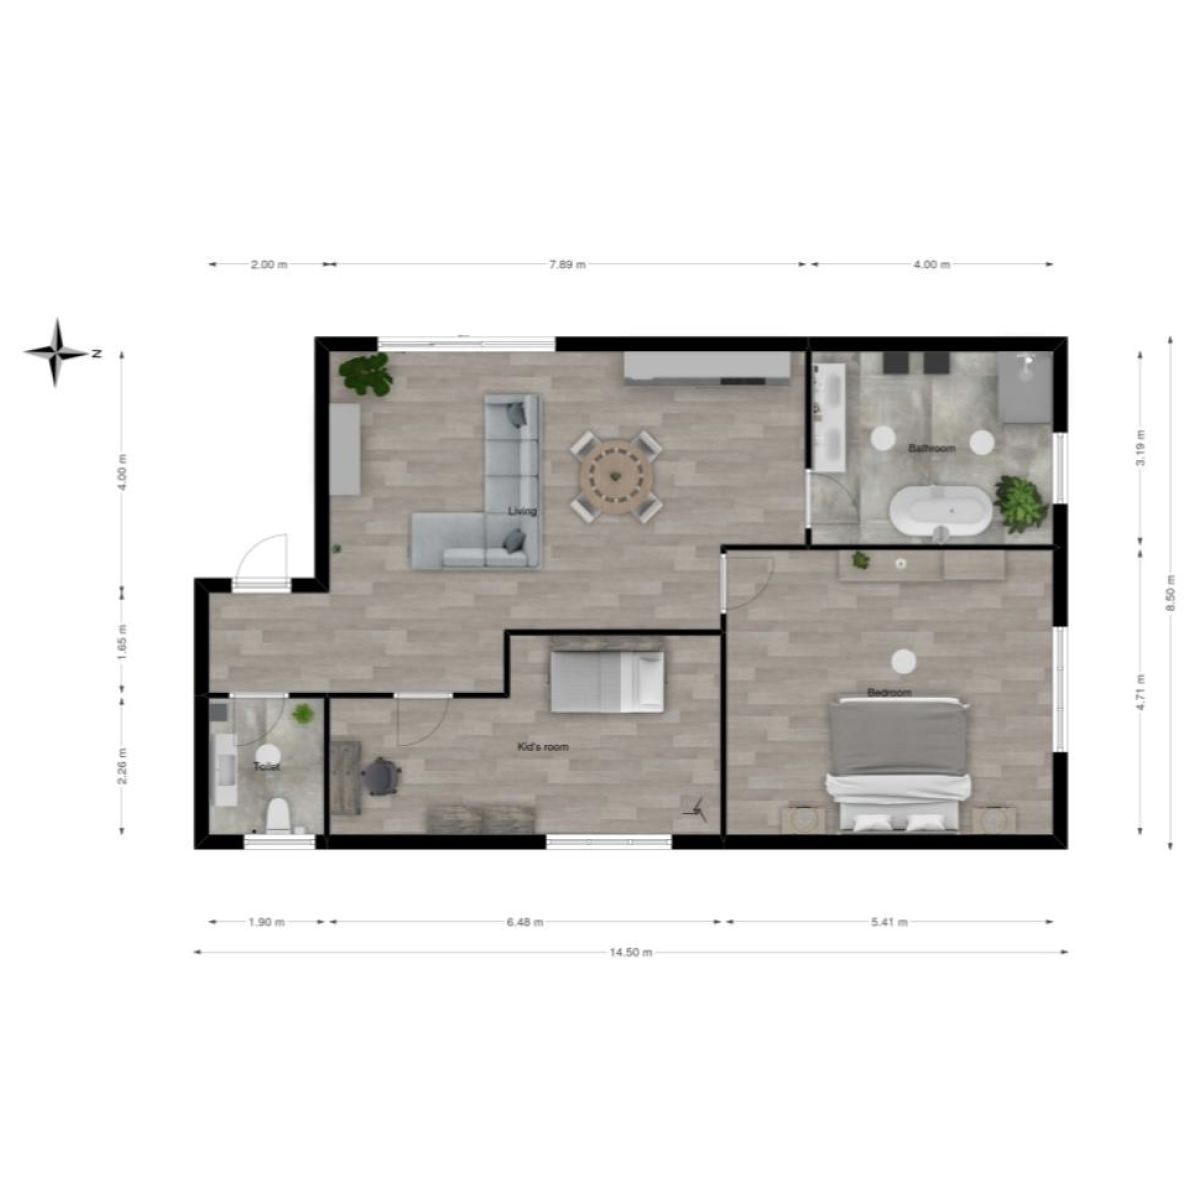 Apartment Layout Made On Floorplanner Com Floor Plans Apartment Layout Create Floor Plan